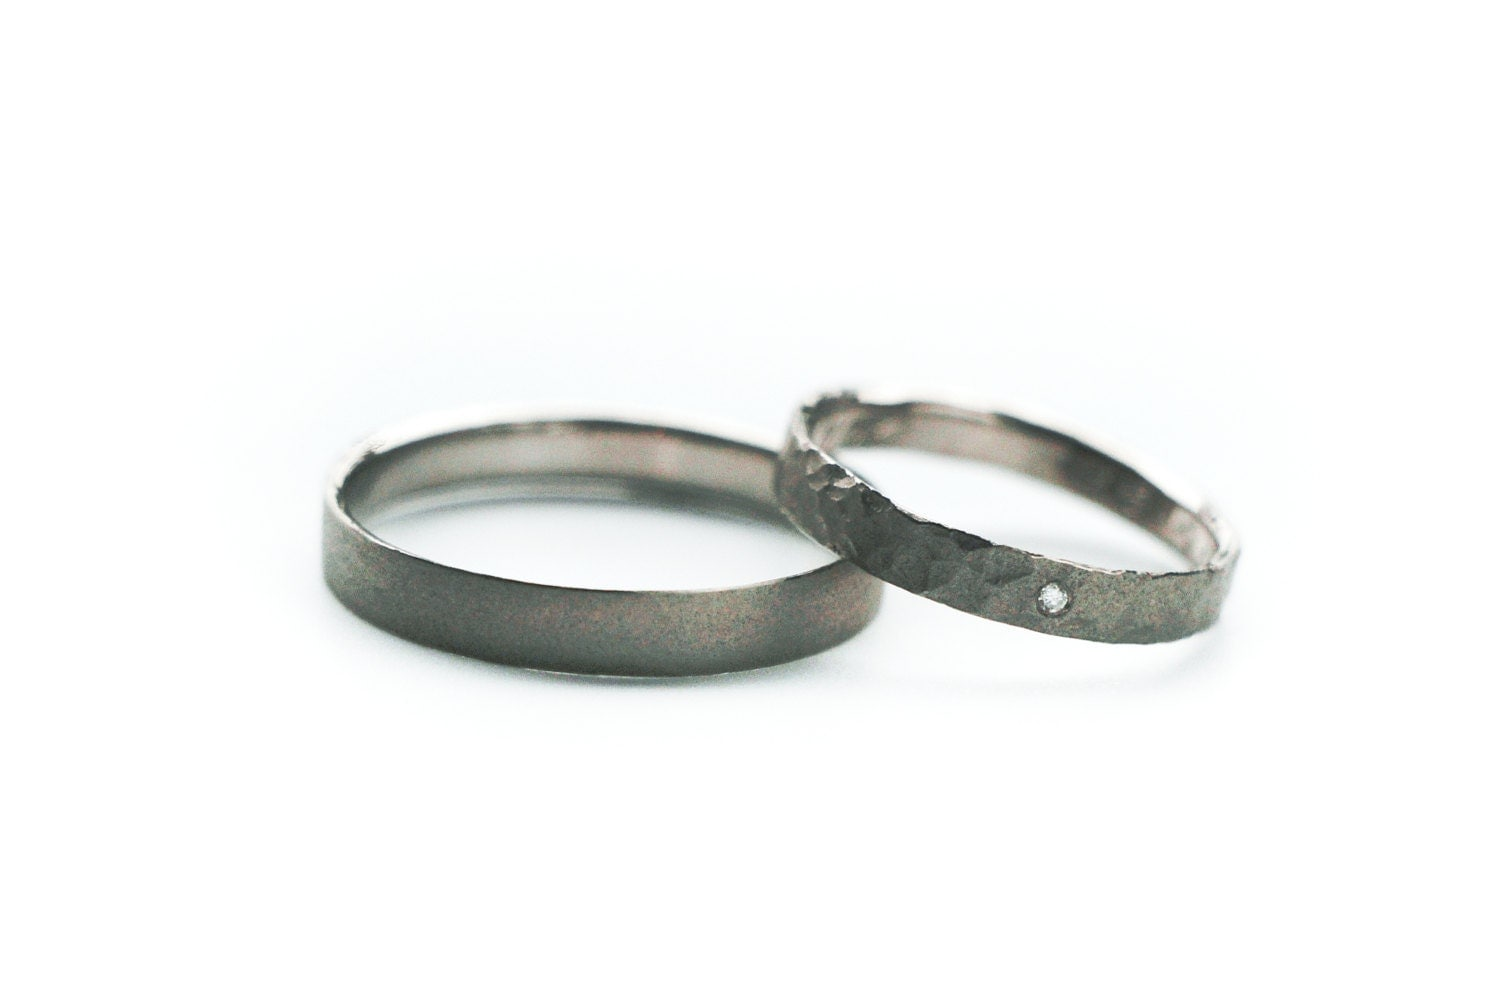 500 Palladium Wedding Rings Set Recycled Palladium Sand And